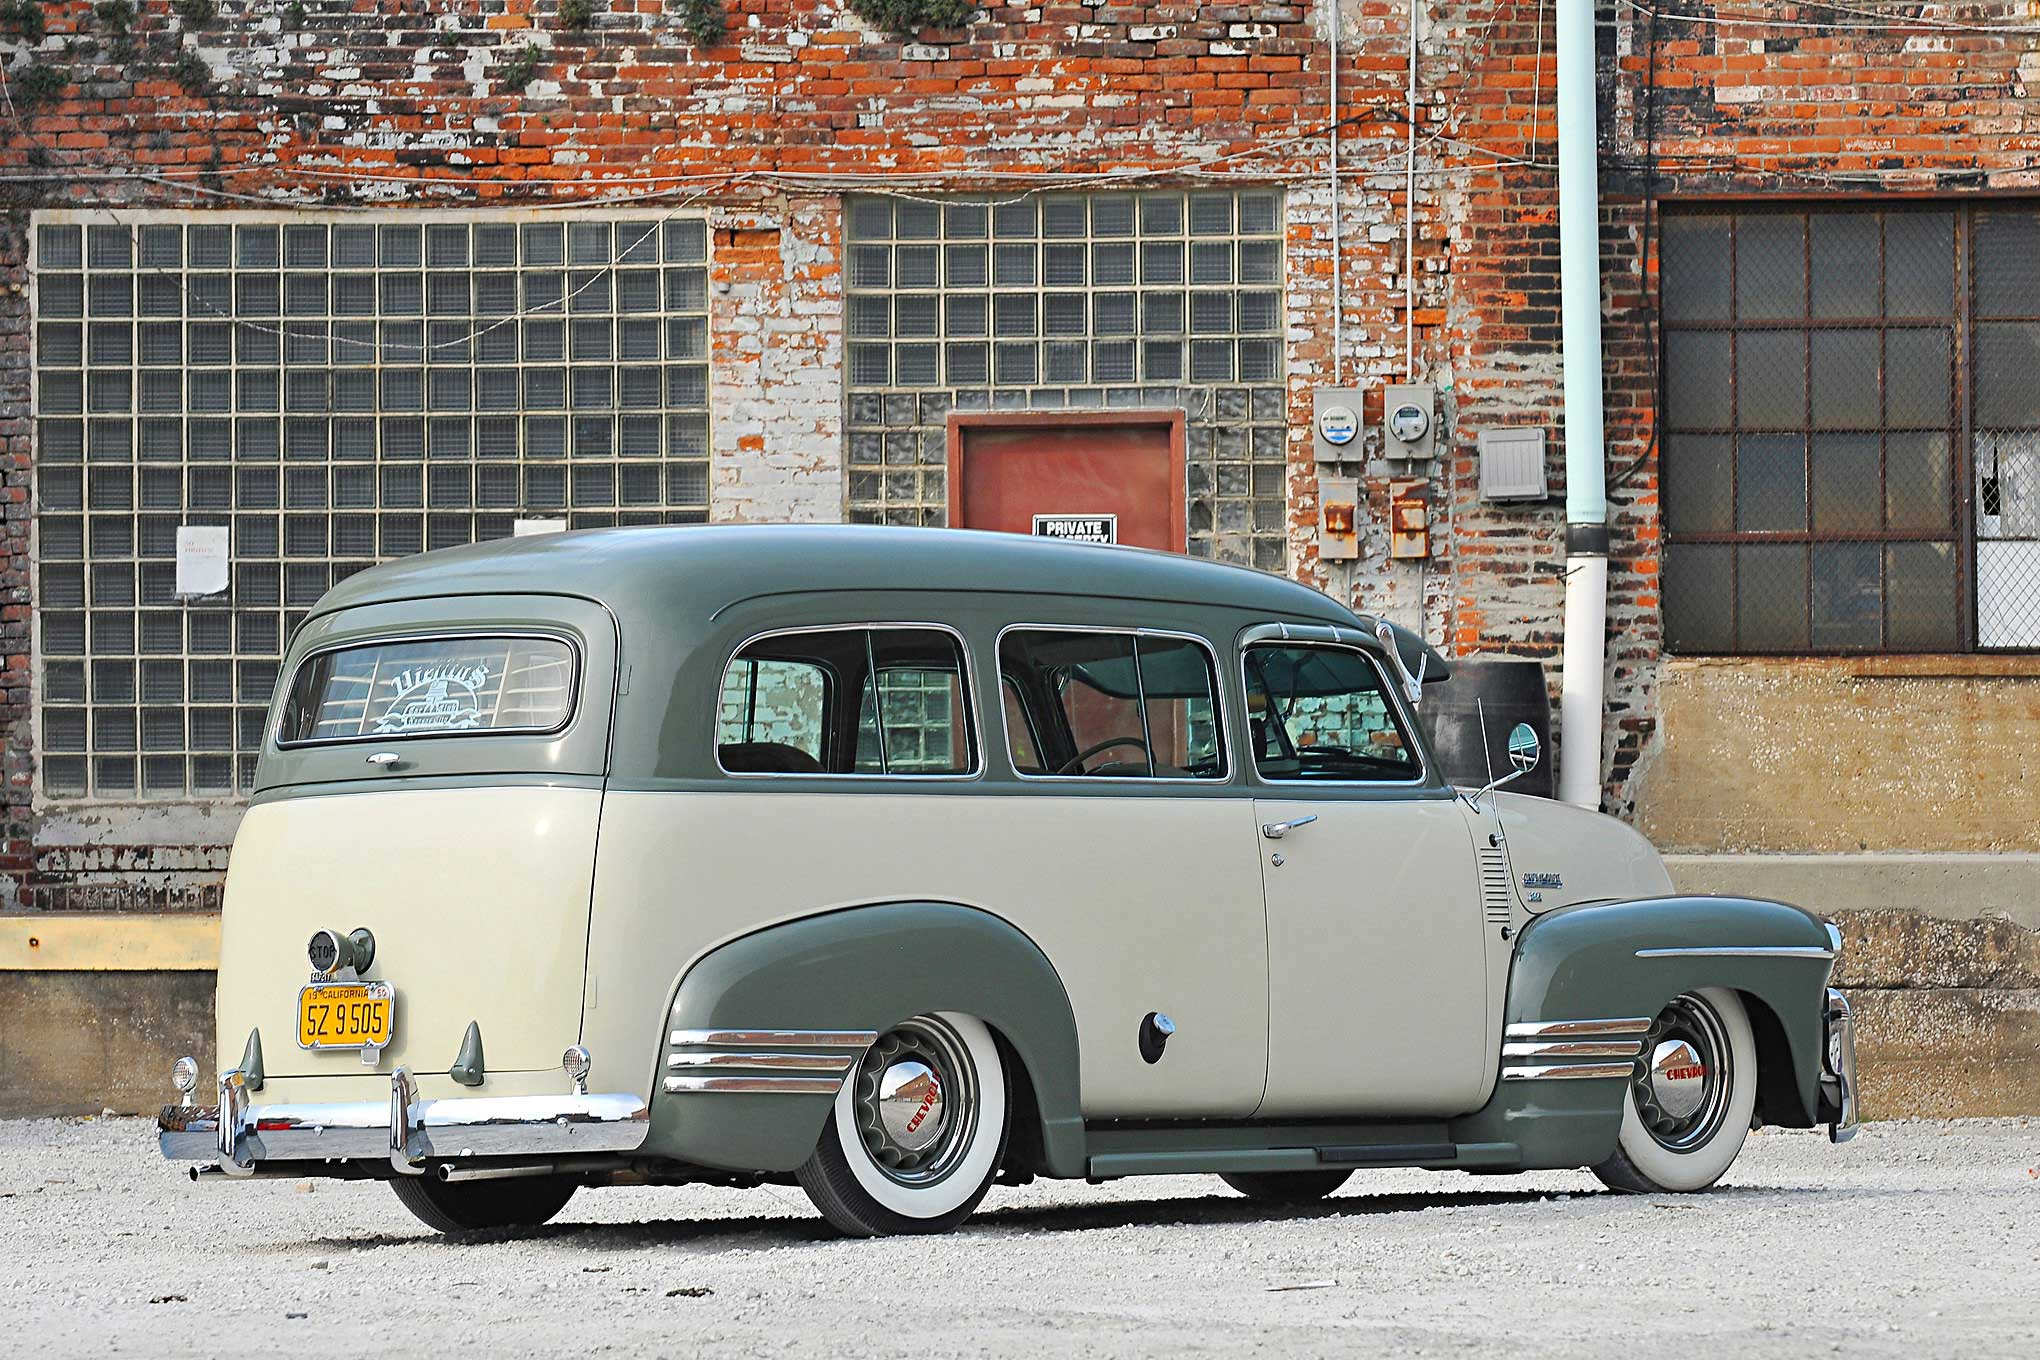 1950 Chevy Suburban Lowrider Wiring Diagrams 1949 Truck Chevrolet Driver Side Rear Quarter View Trucks About This Editor